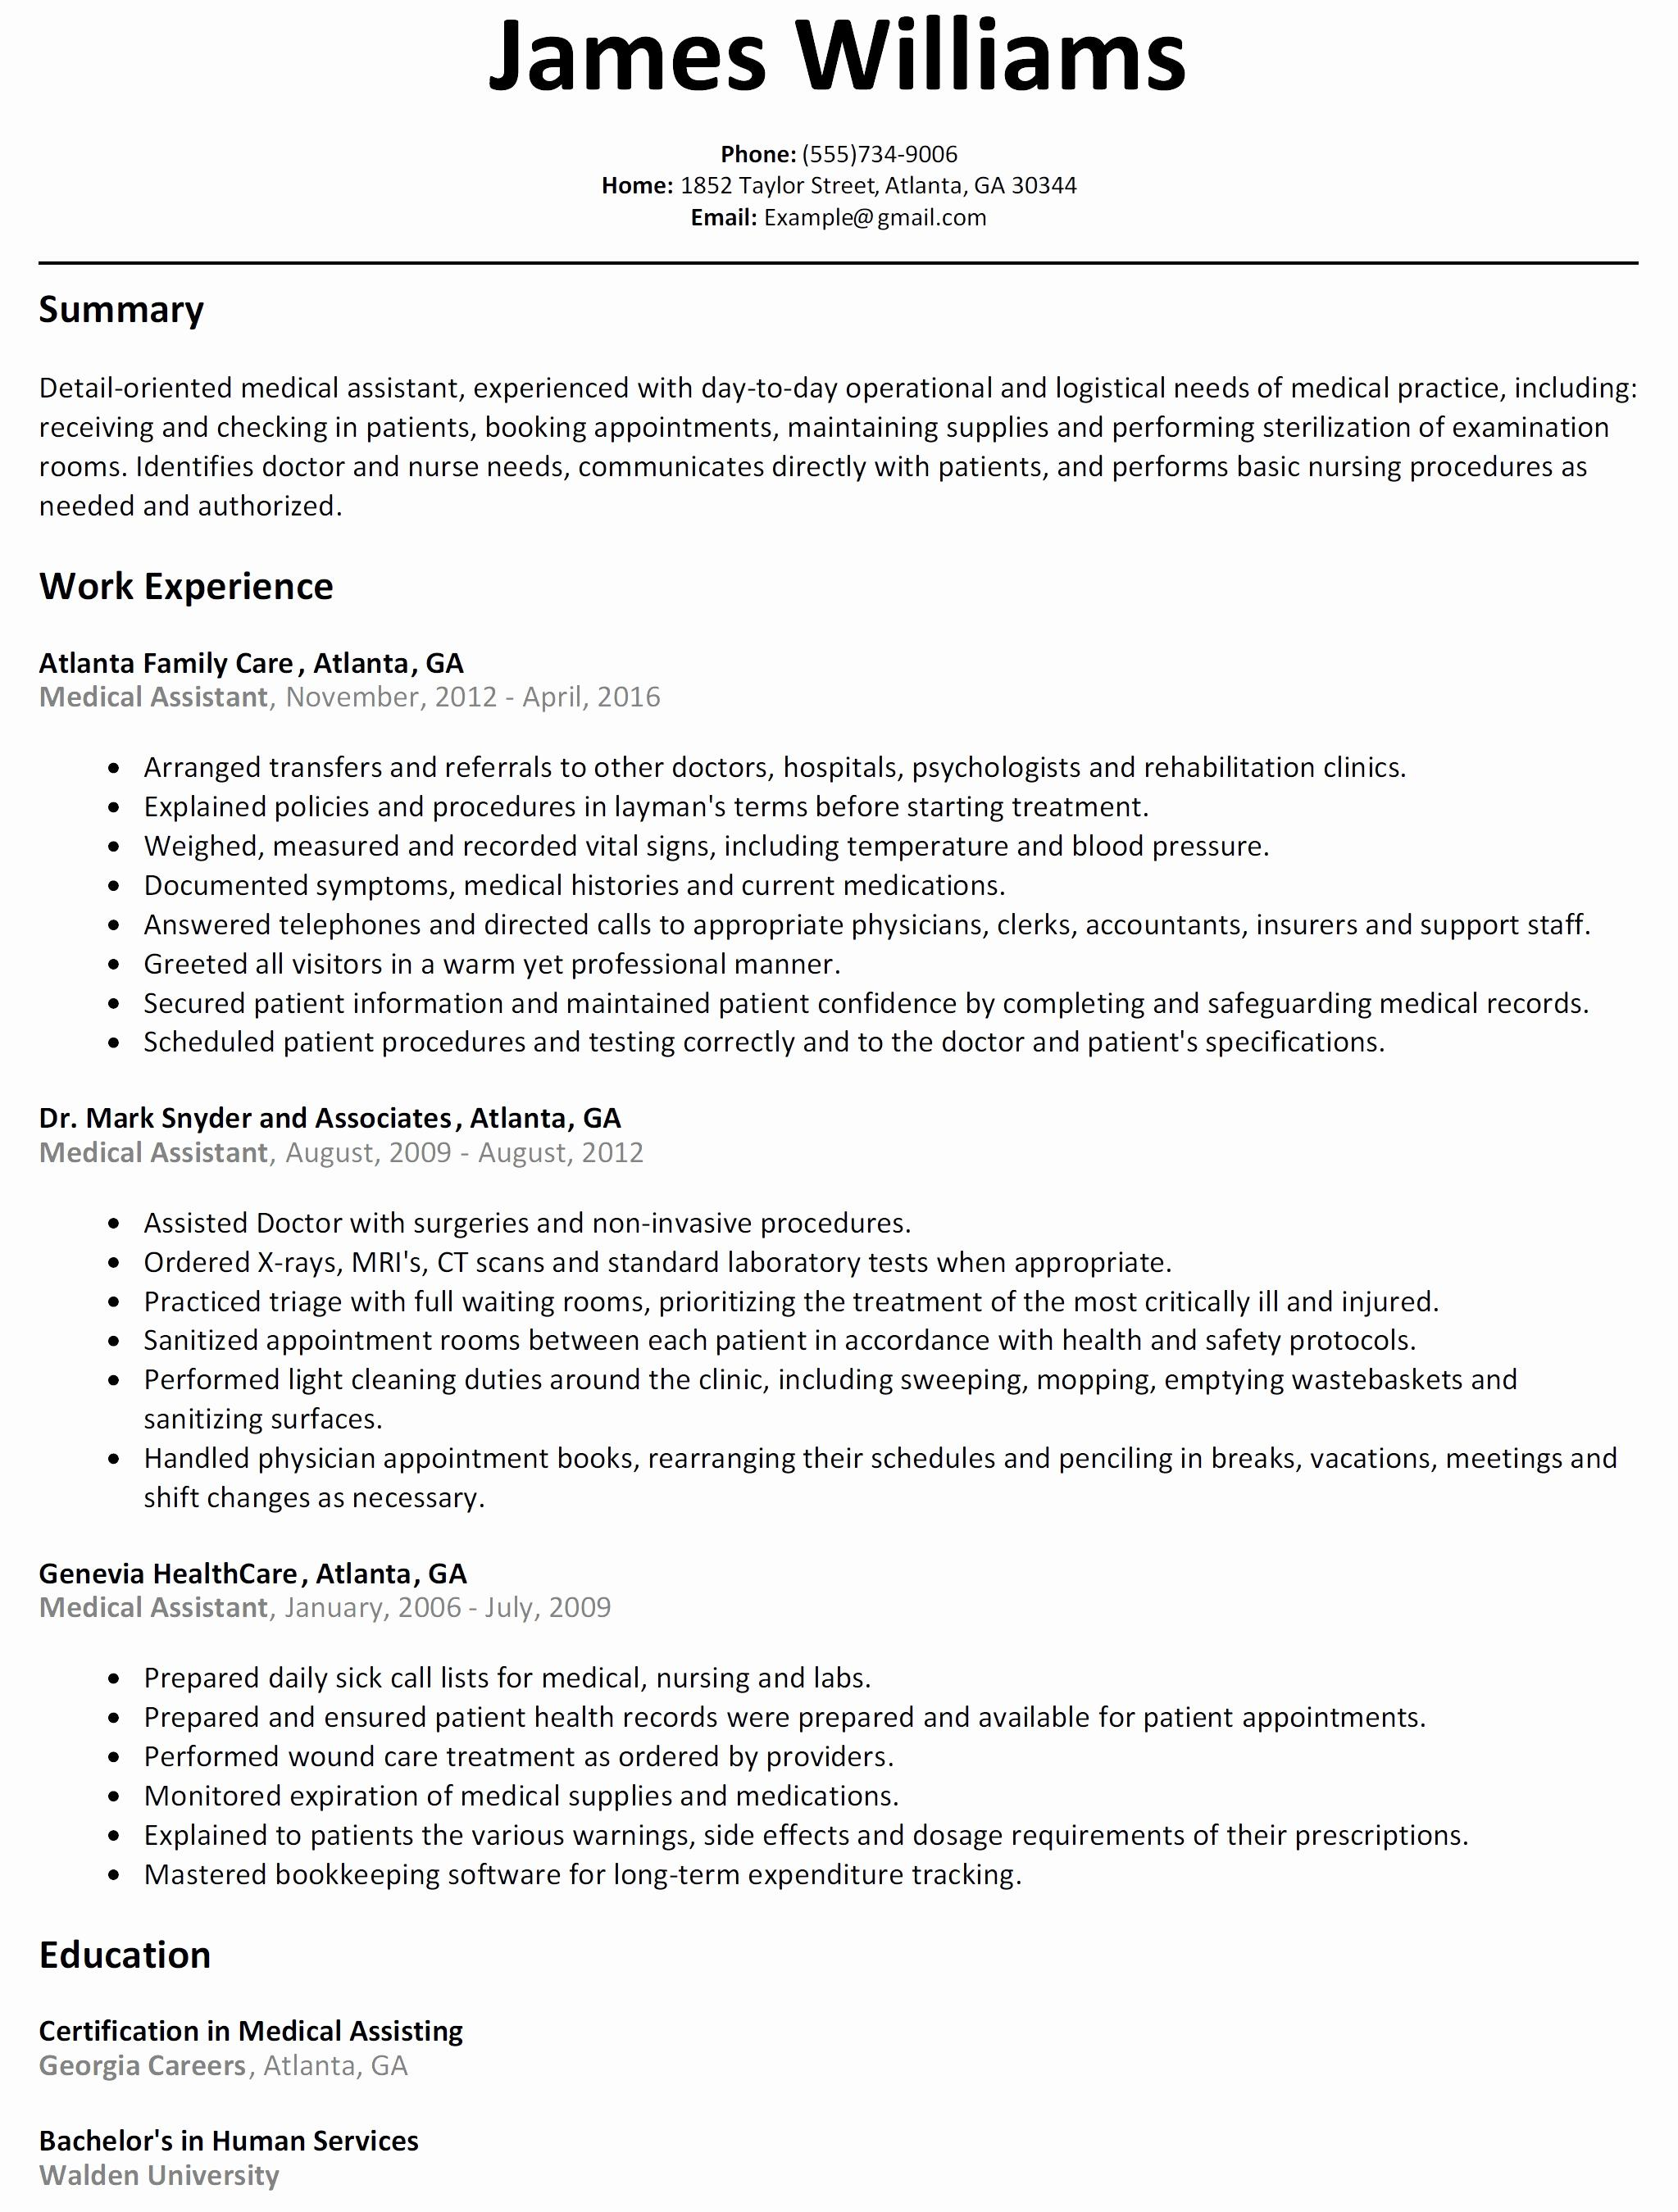 Teaching Resume Template Microsoft Word - Resume Template Free Word Beautiful Best Resume Templates Word New